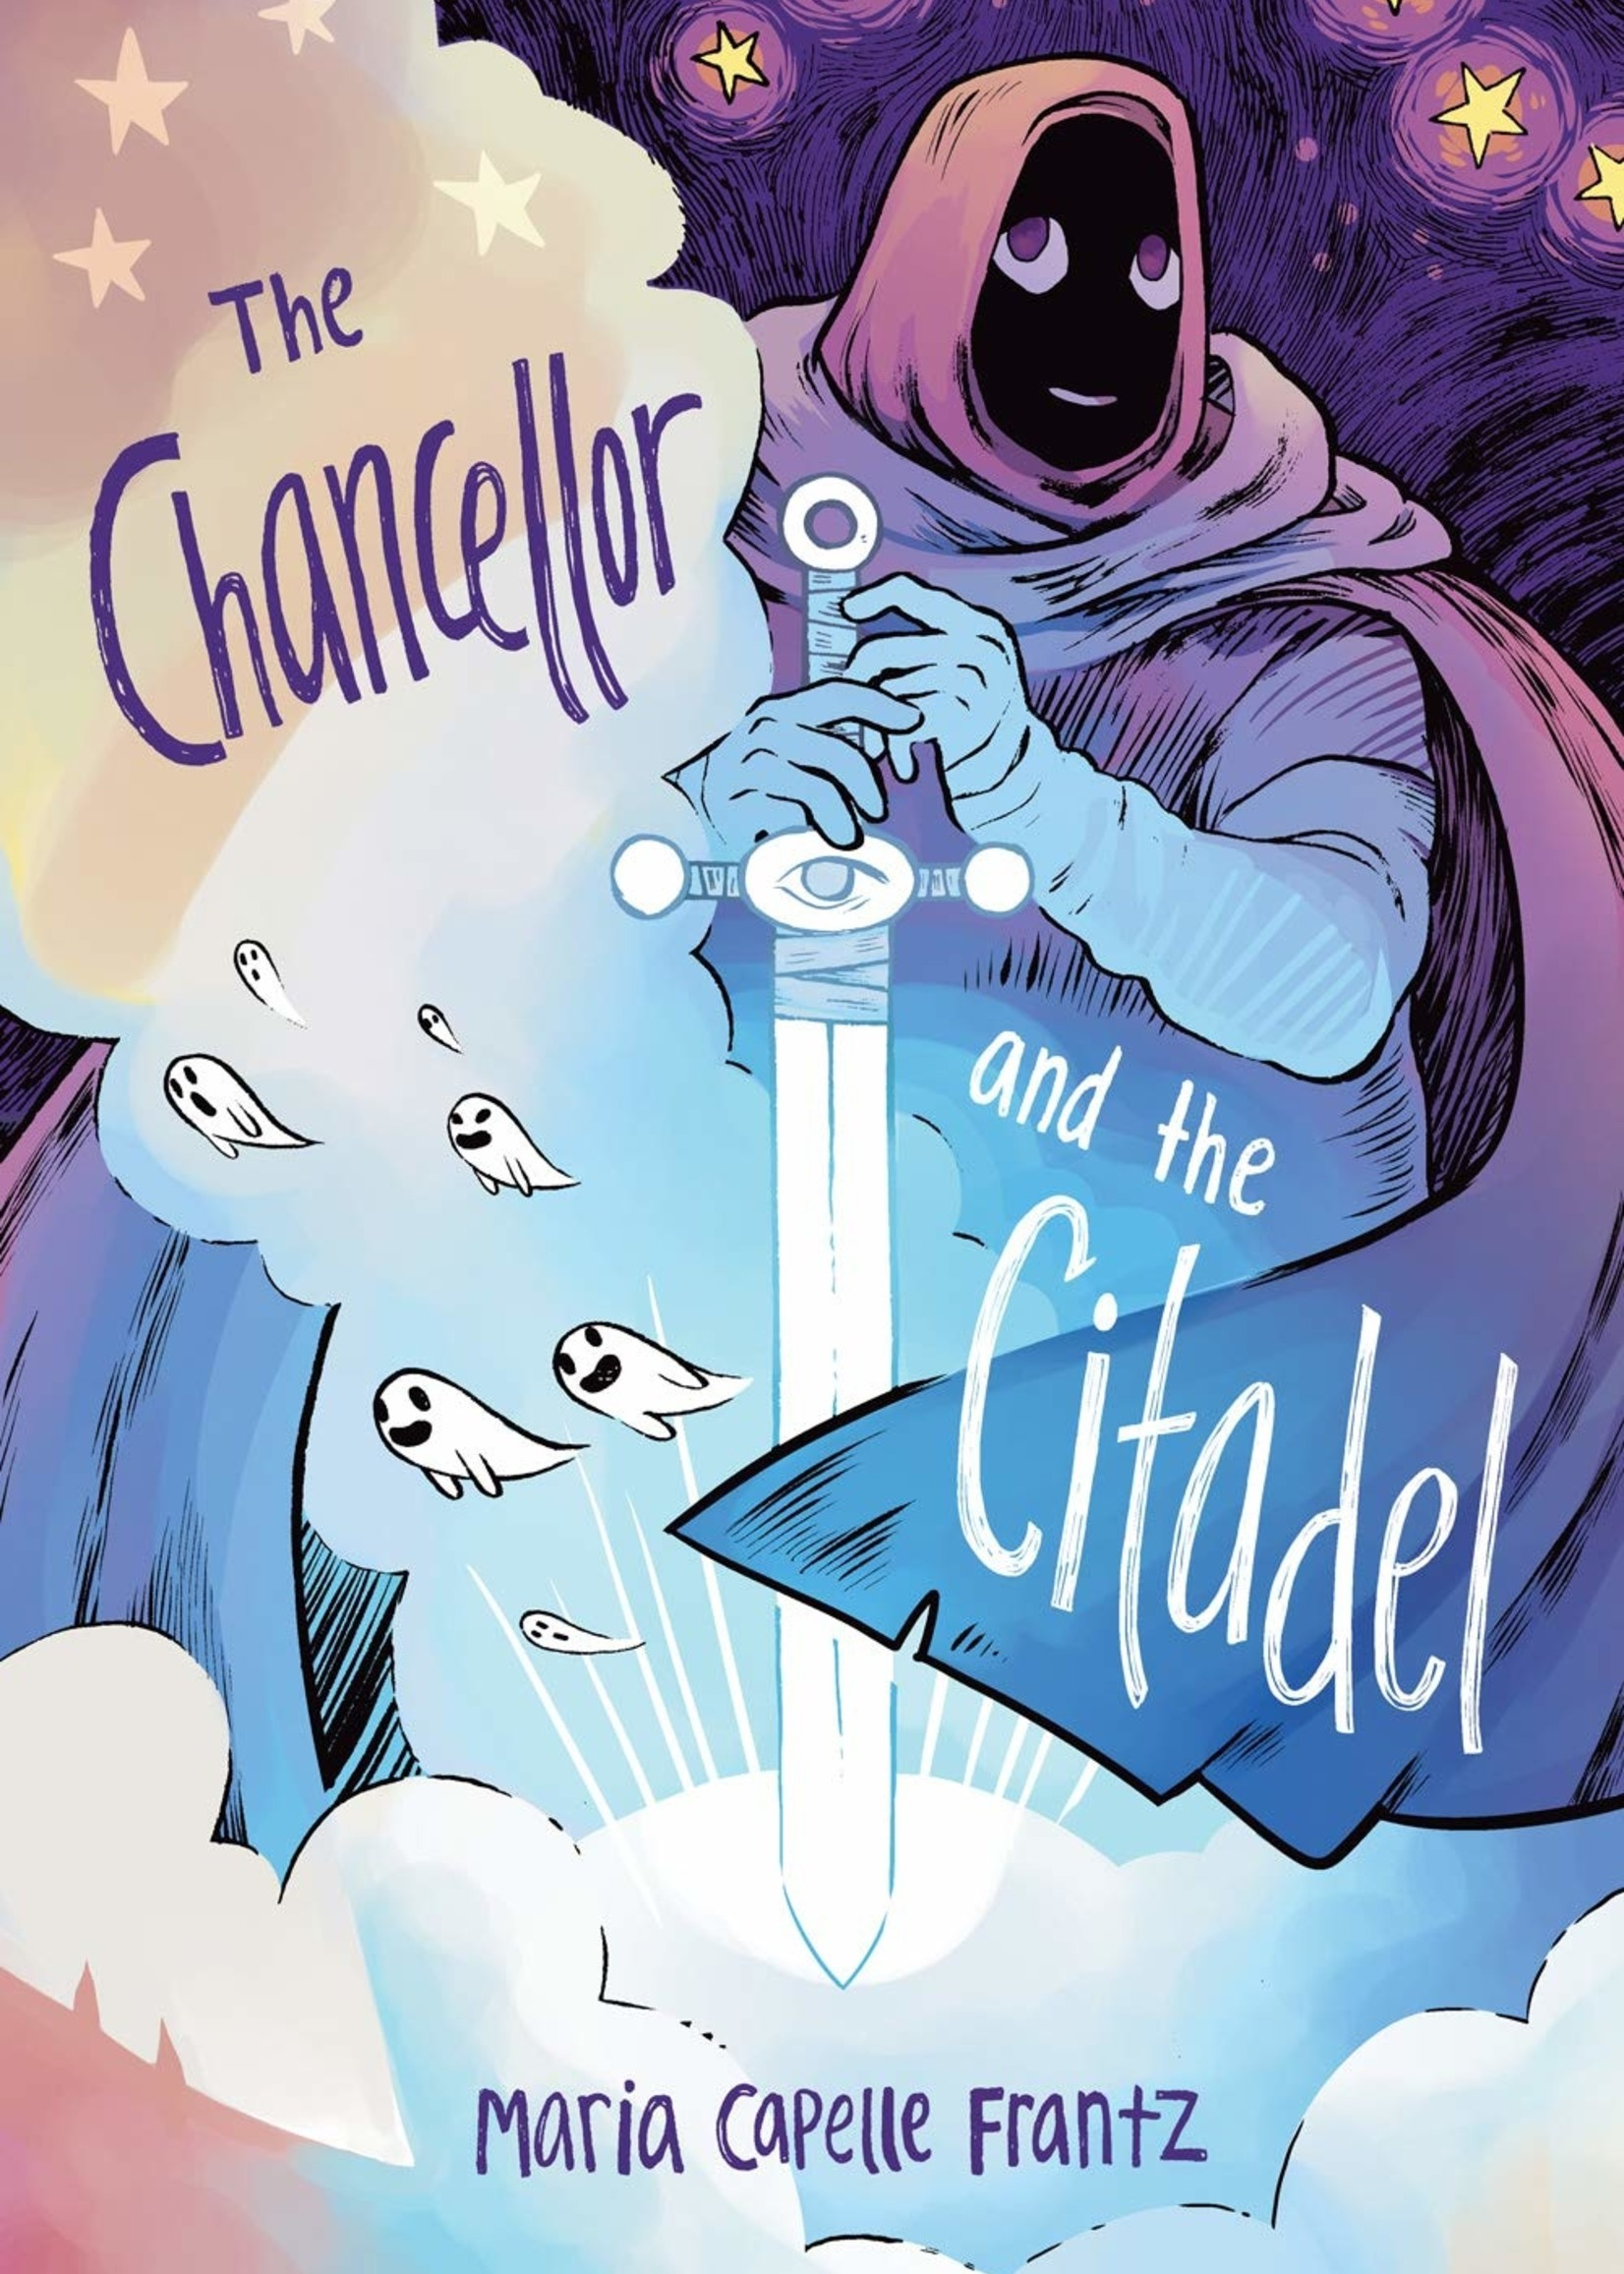 The Chancellor and the Citadel Graphic Novel - Paperback